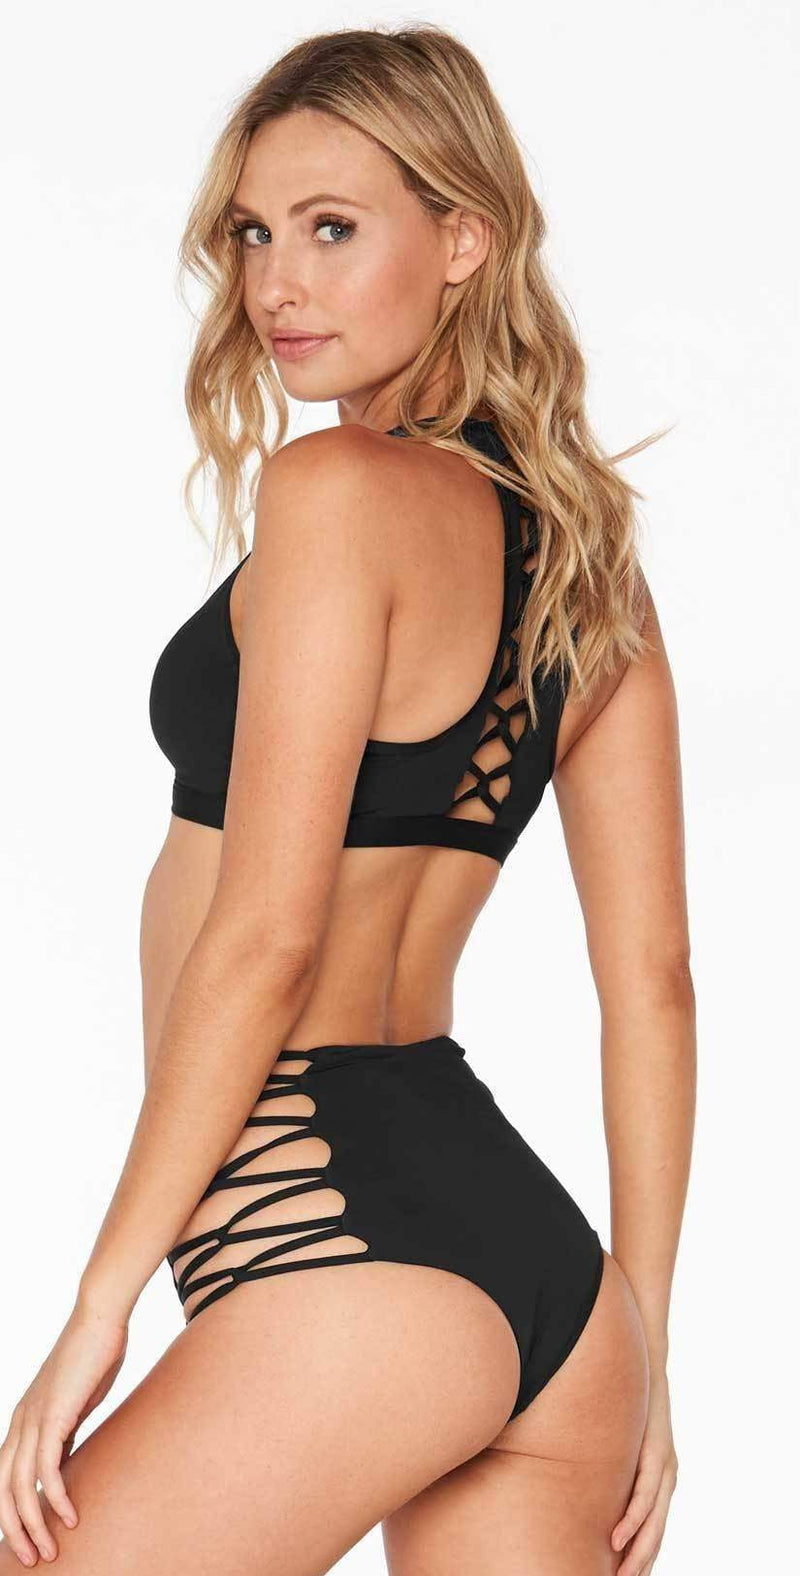 L Space Skylar Top in Black LASKT17-BLK: